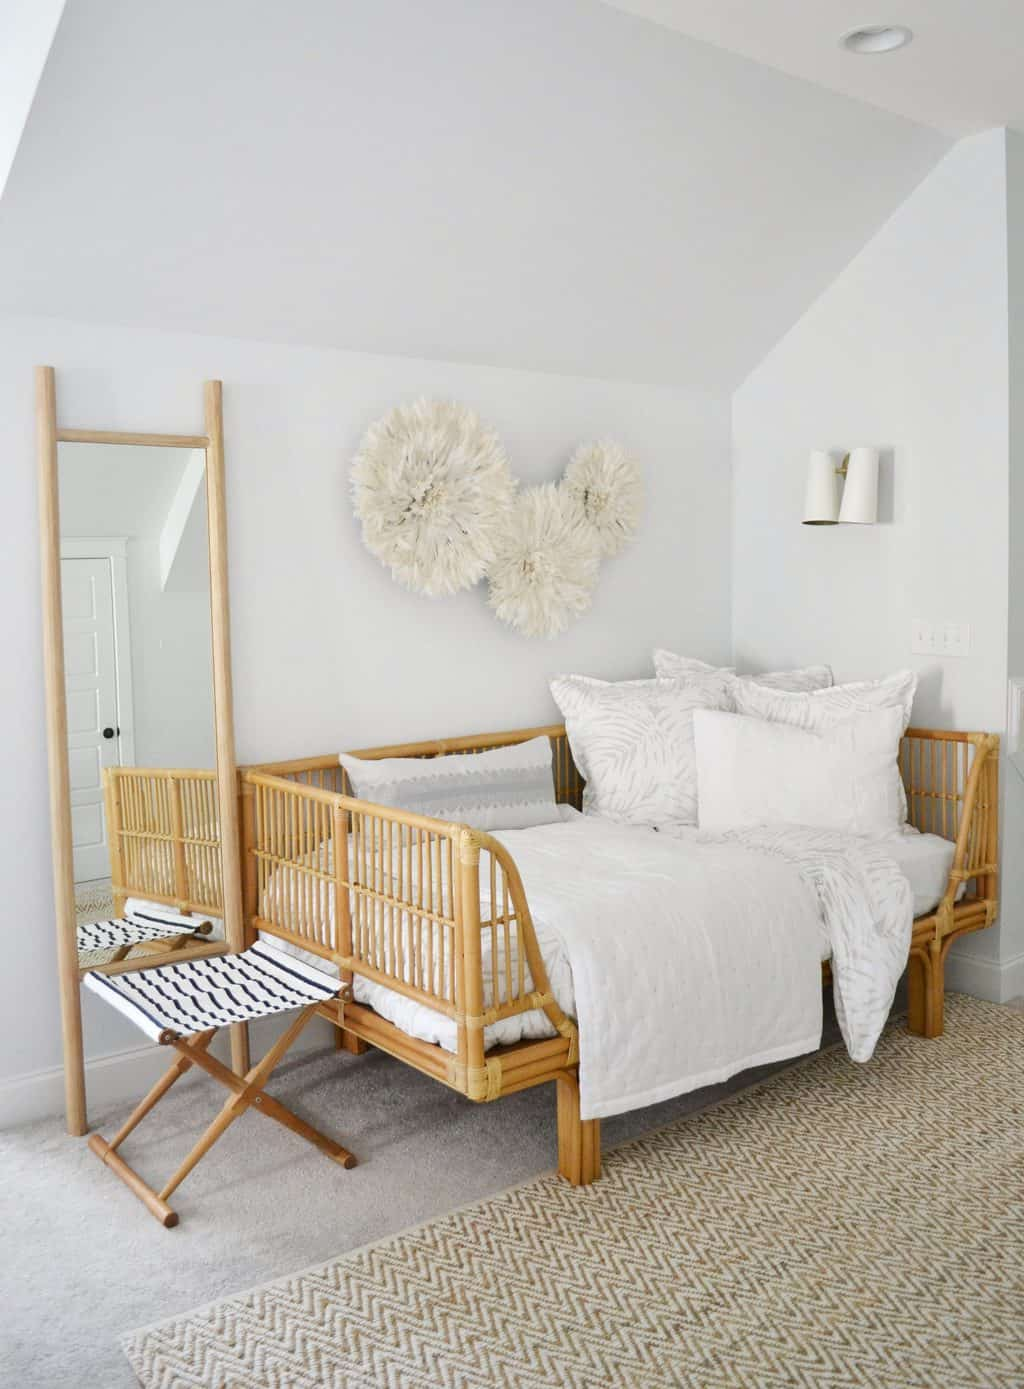 twin bed in guest room with juju hat on wall